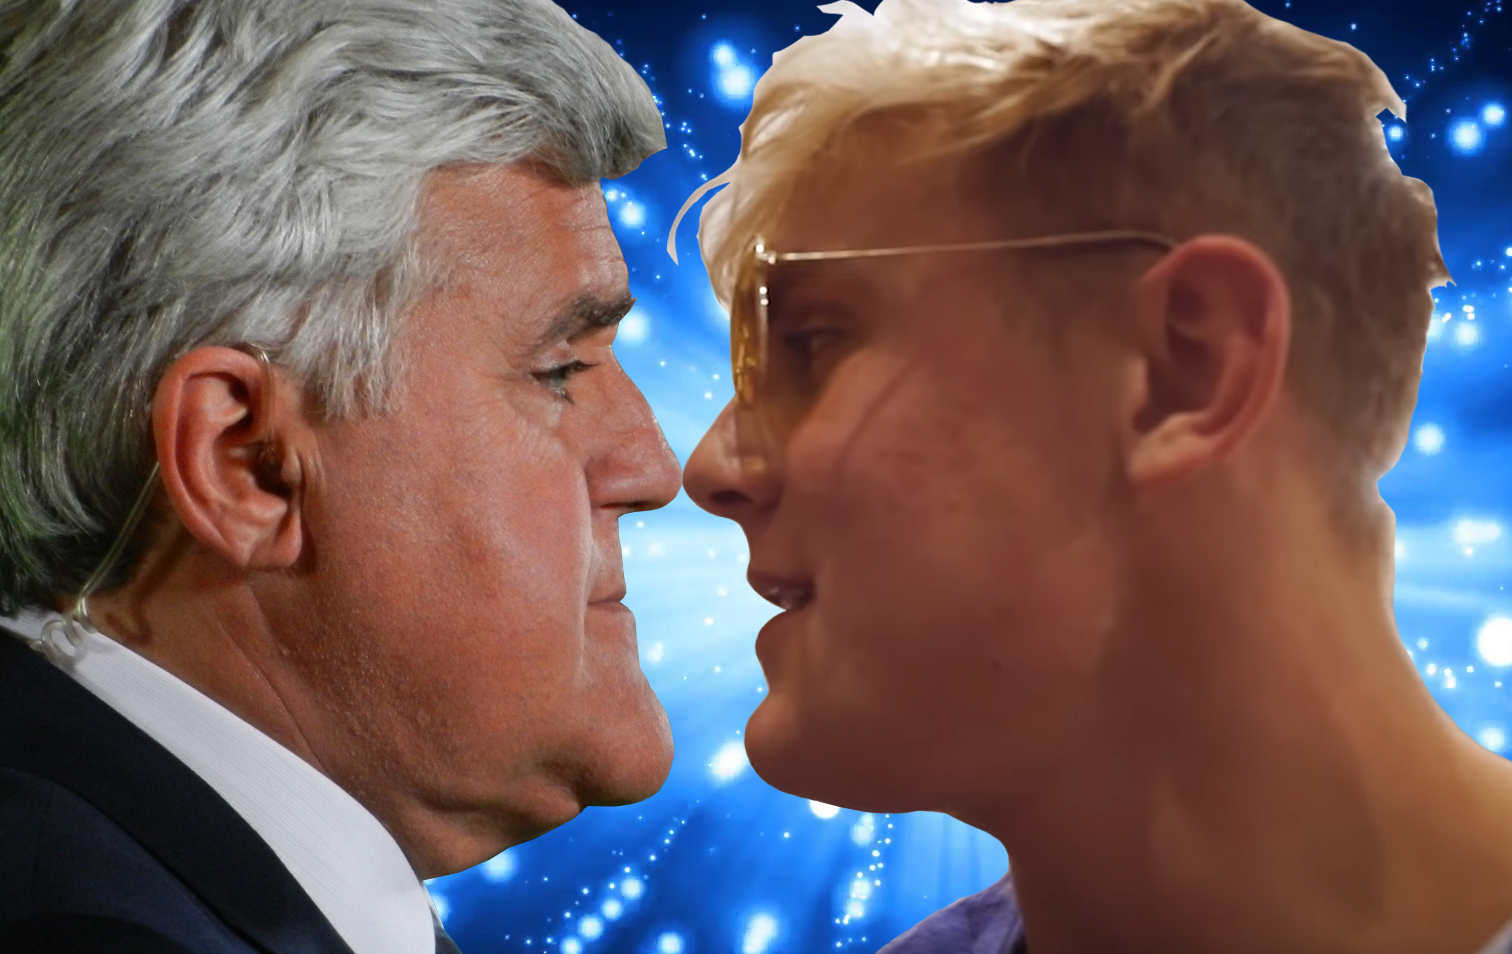 JAKE PAUL AND JAY LENO BEST MEME EVER  MEET FACE TO FACE AND THE UNTHINKABLE HAPPENS